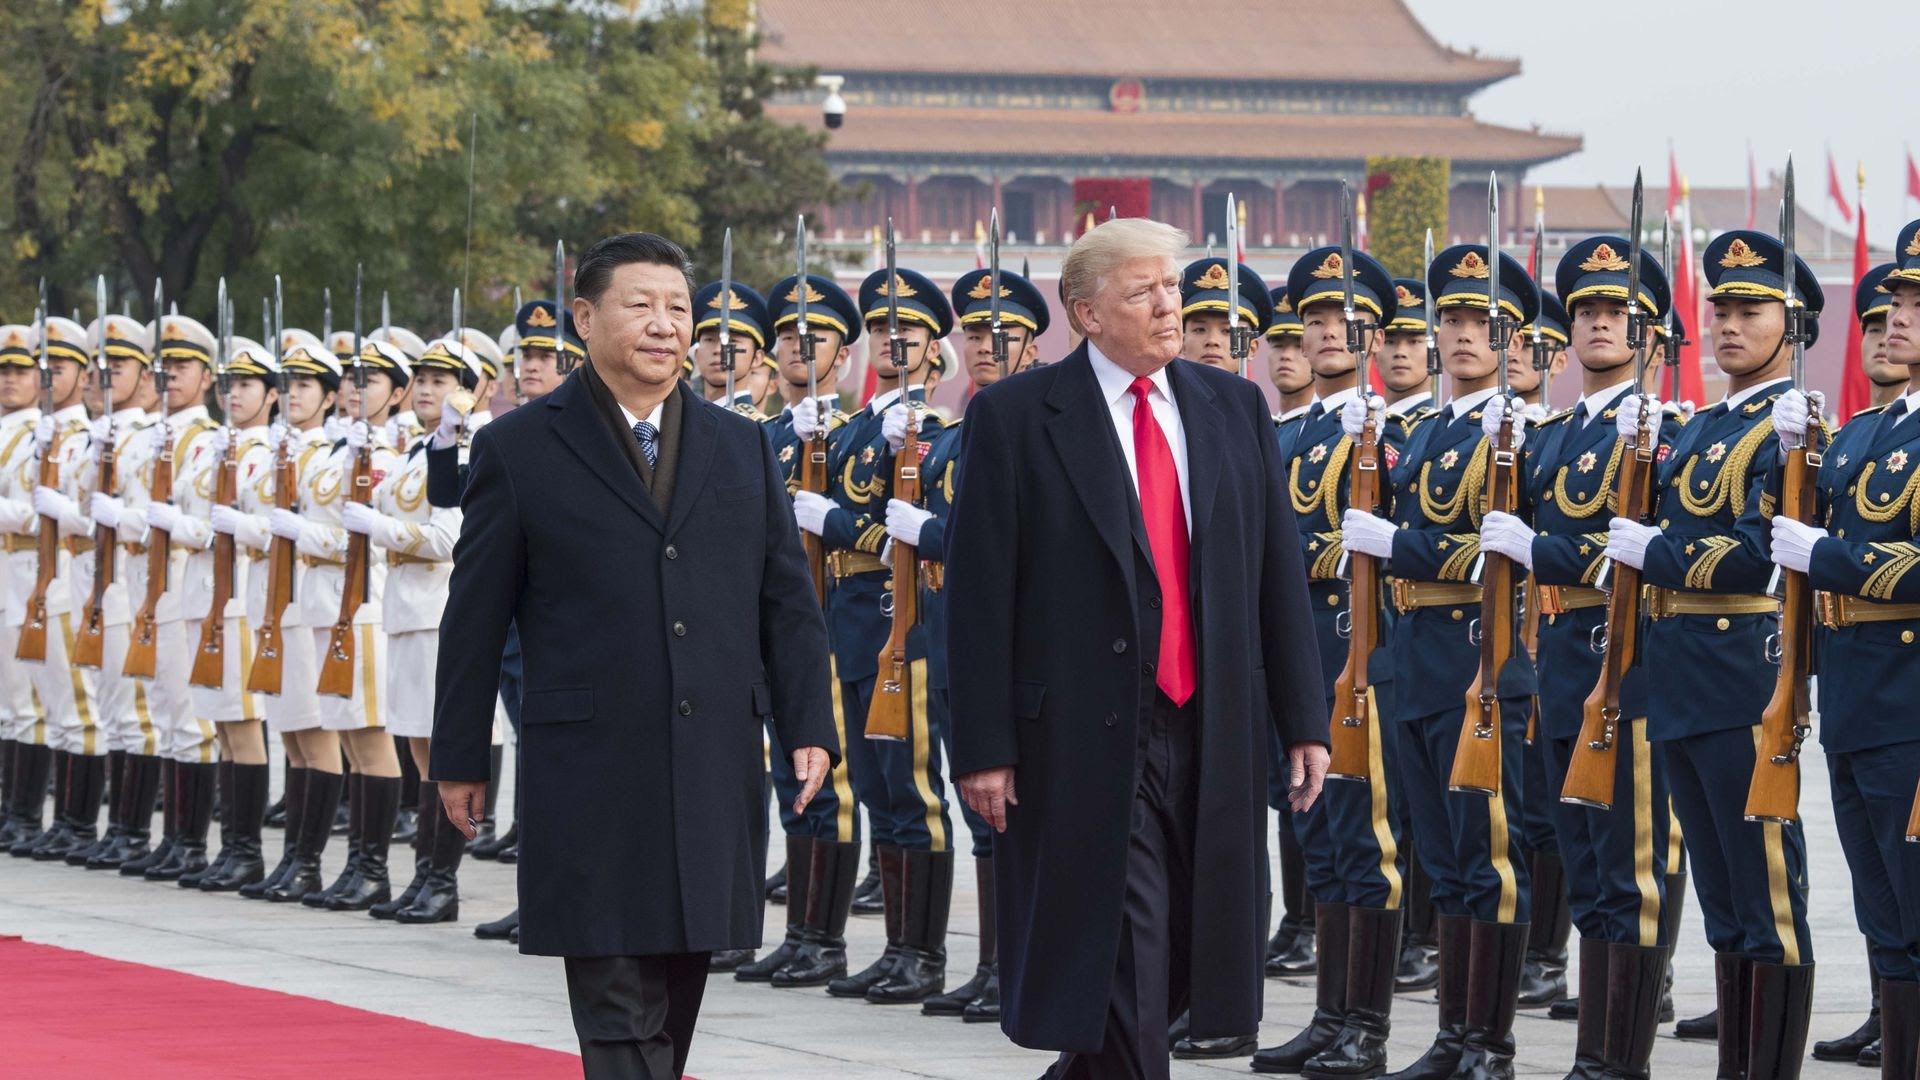 China foresees new Cold War with U.S.